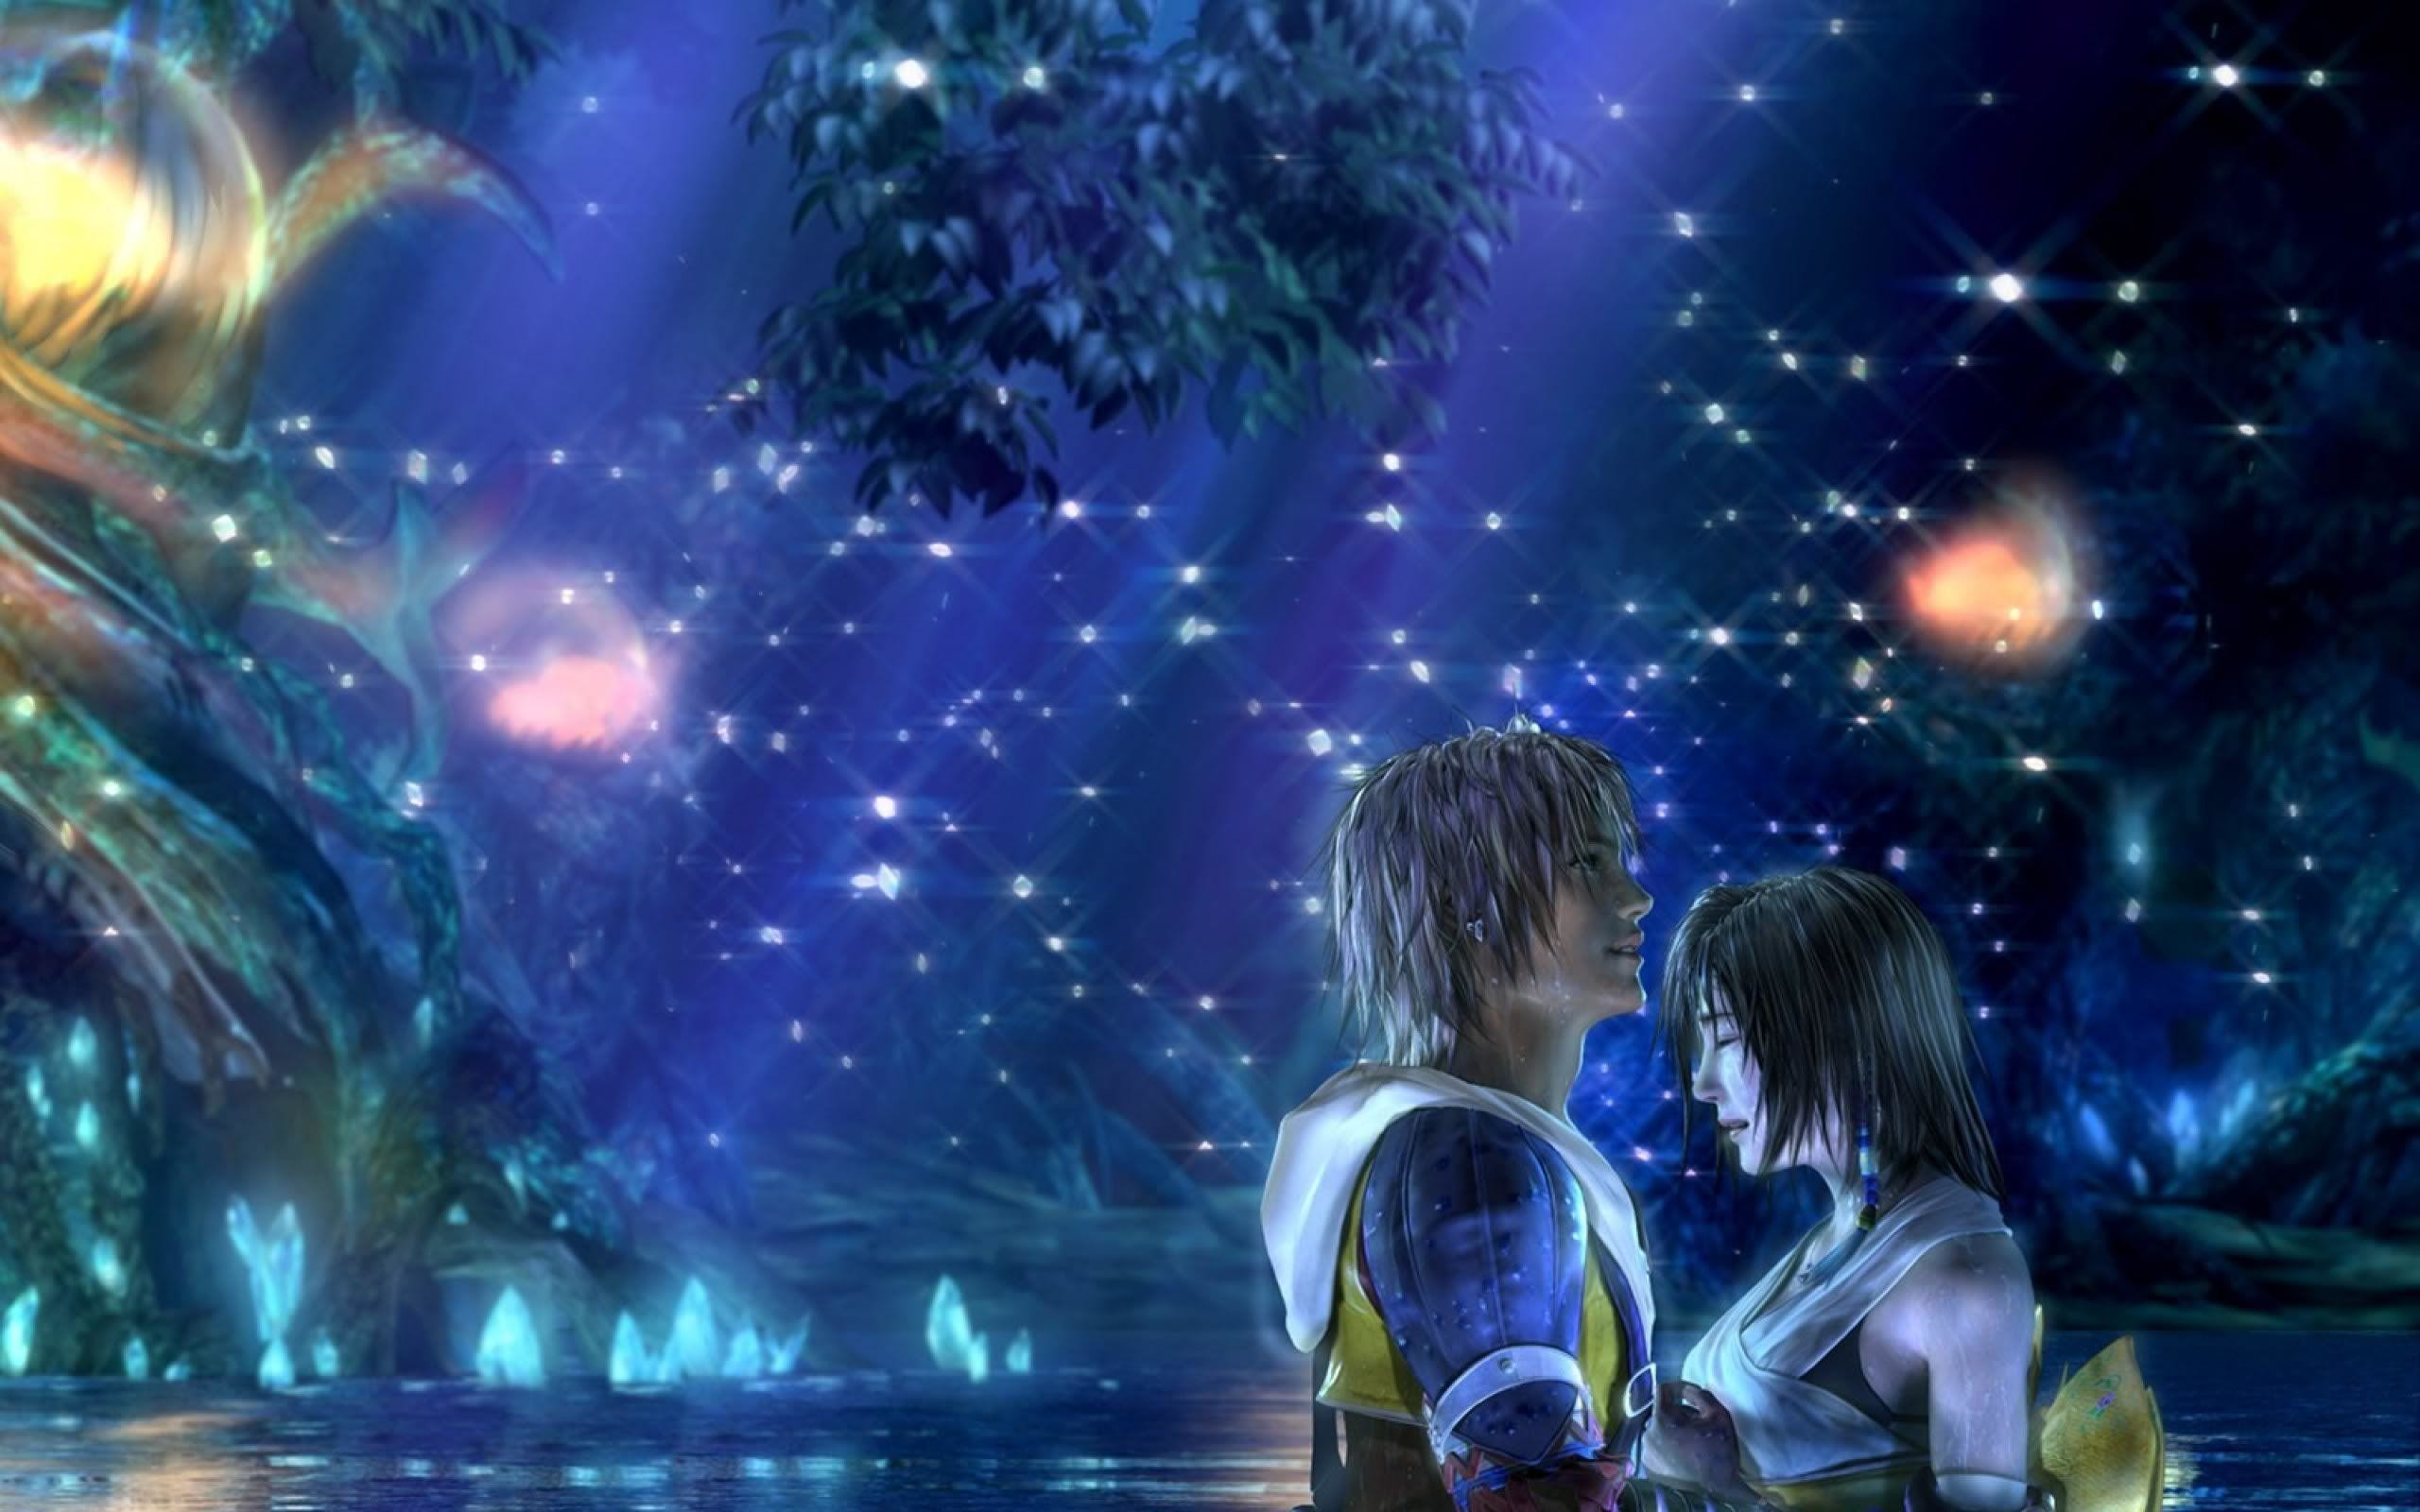 2560x1600 Final Fantasy X Wallpapers - Full HD wallpaper search